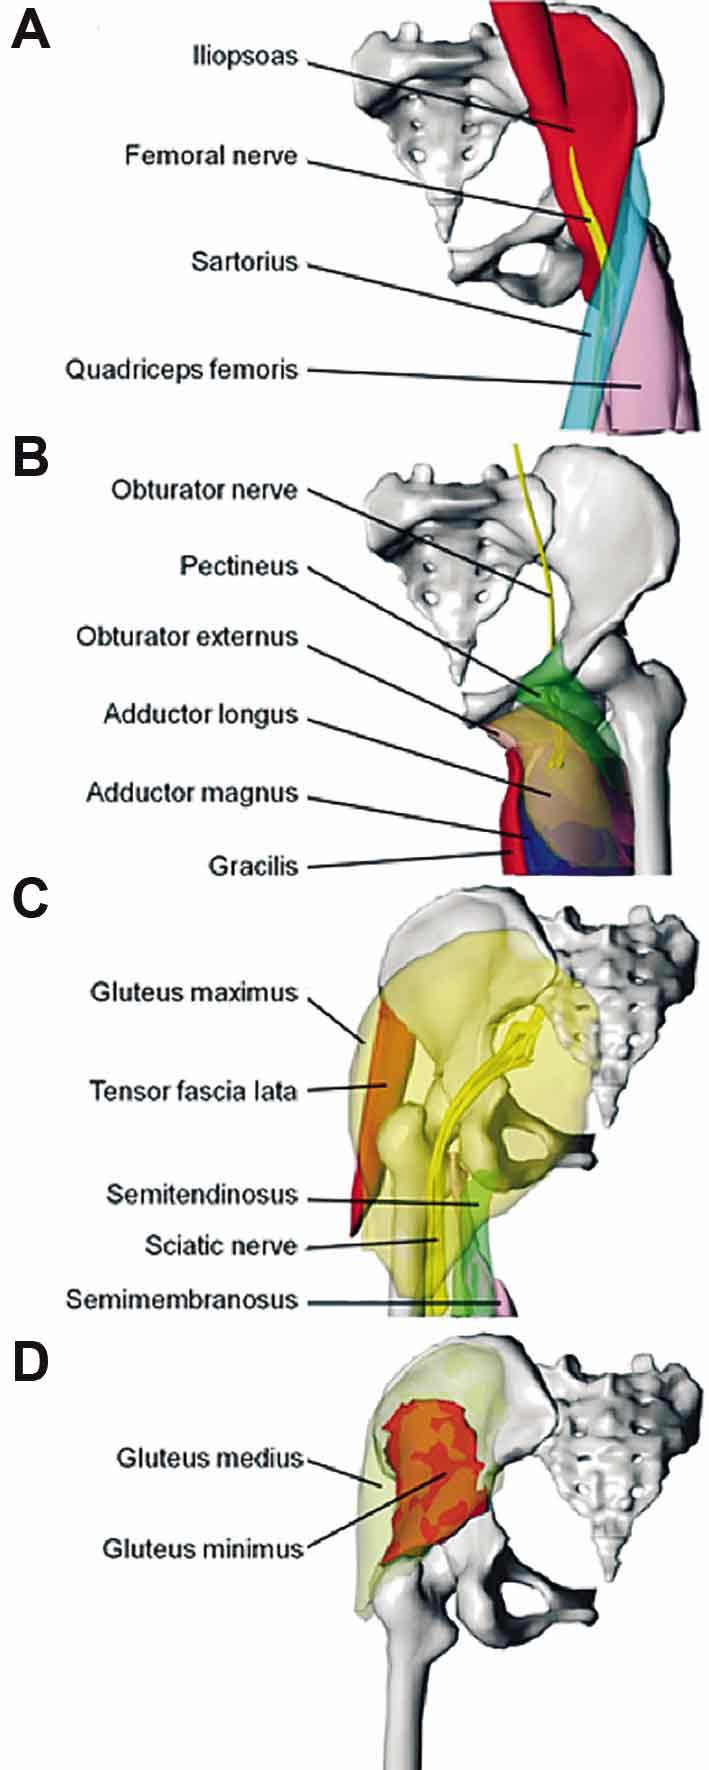 medium resolution of surface models of the hip joint muscles and their innervating nerves muscles are roughly categorized into the flexors a and adductors b shown in the